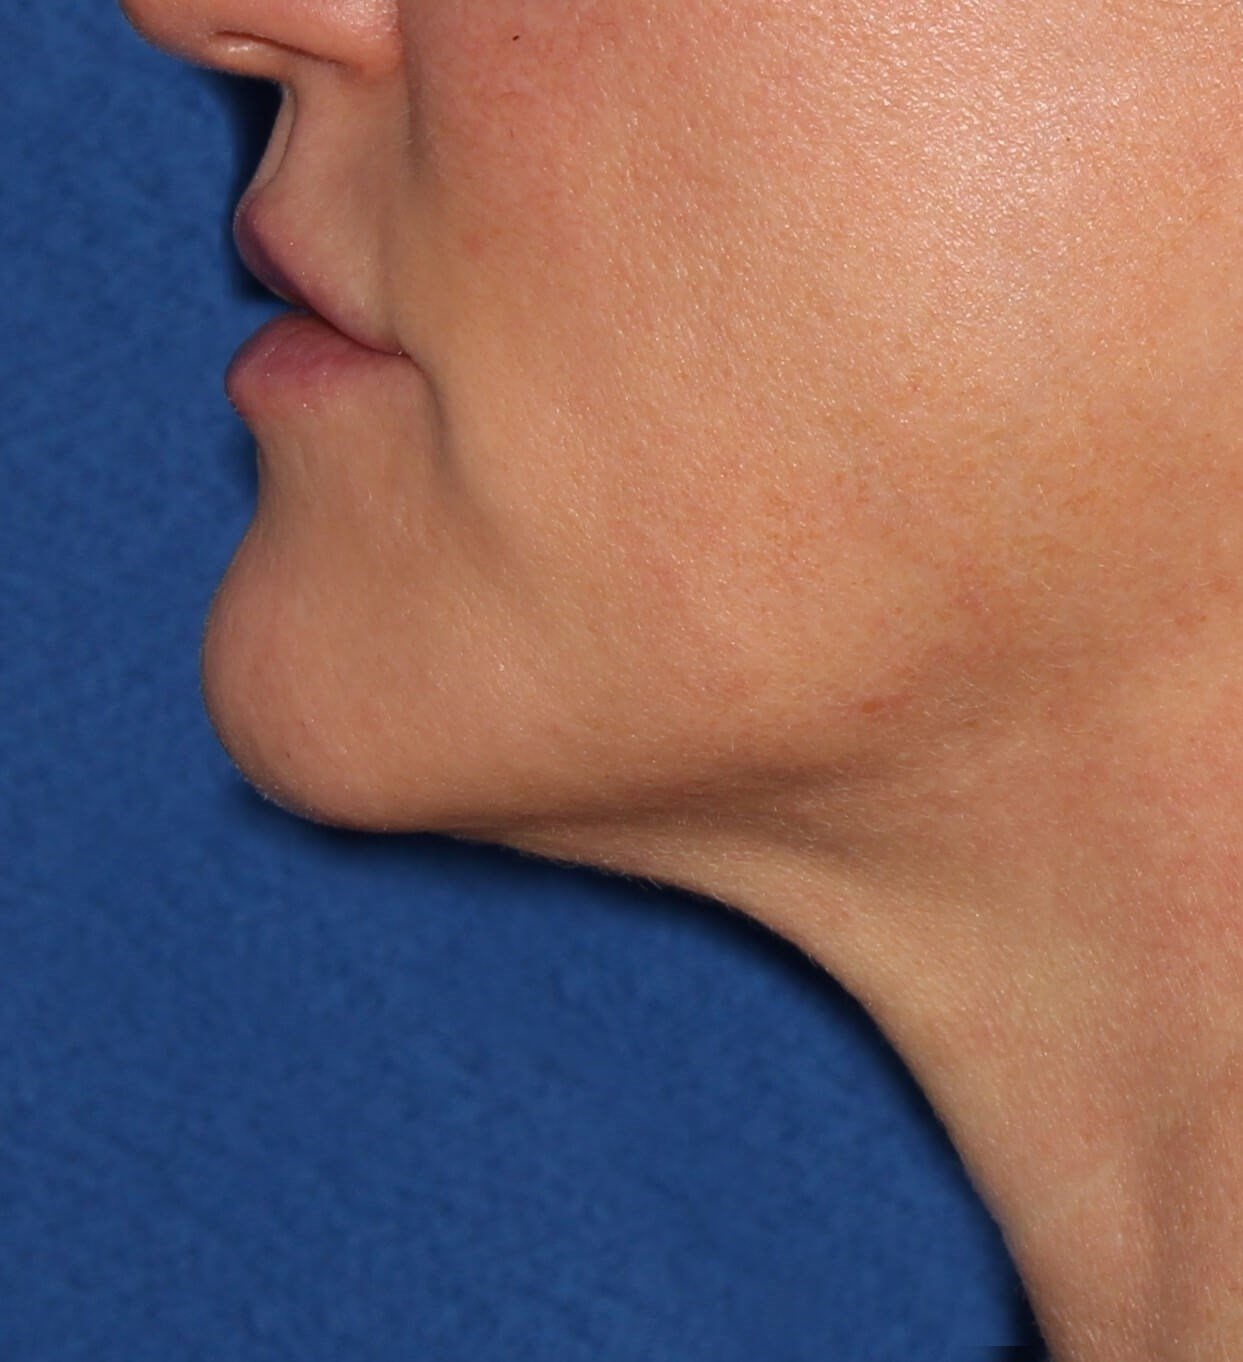 Ultherapy Skin Tightening After- one year post-treatment